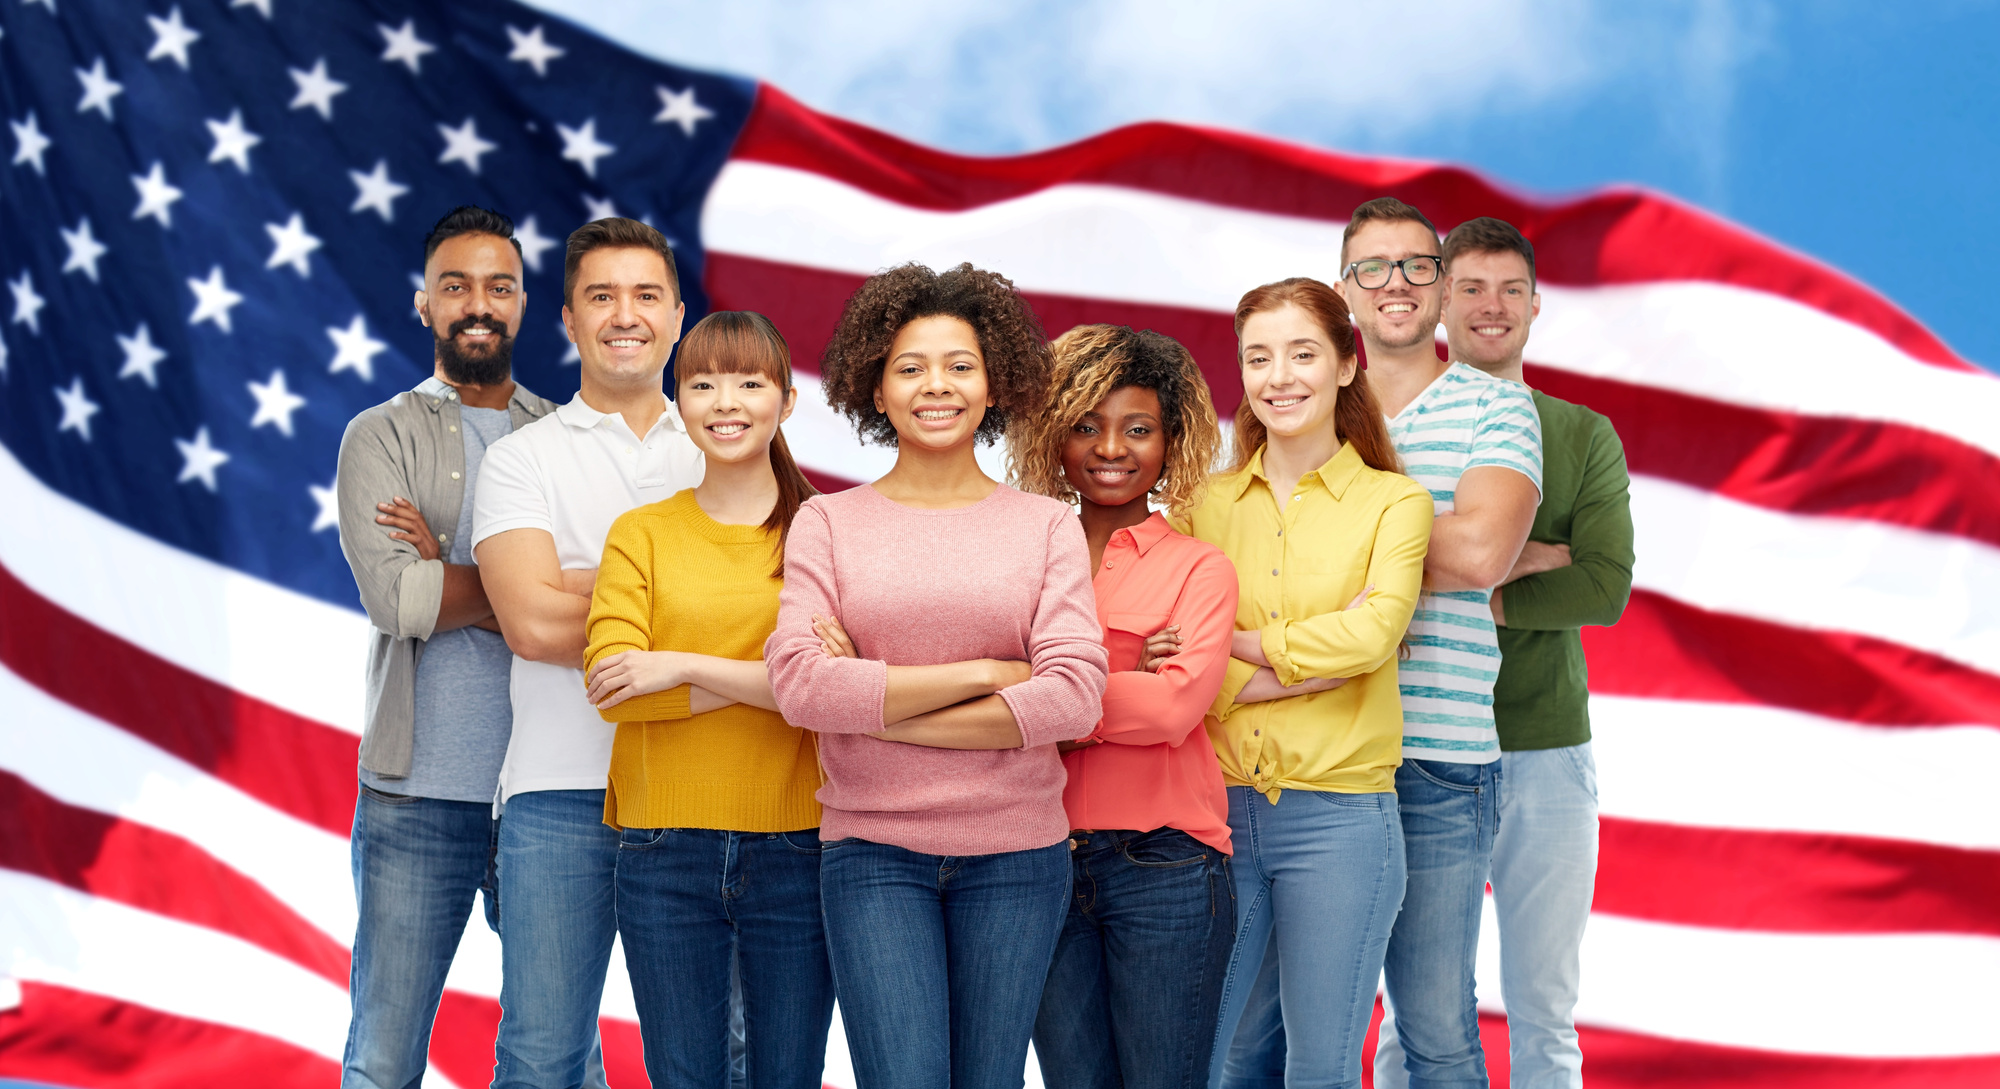 Diversity Of The United States